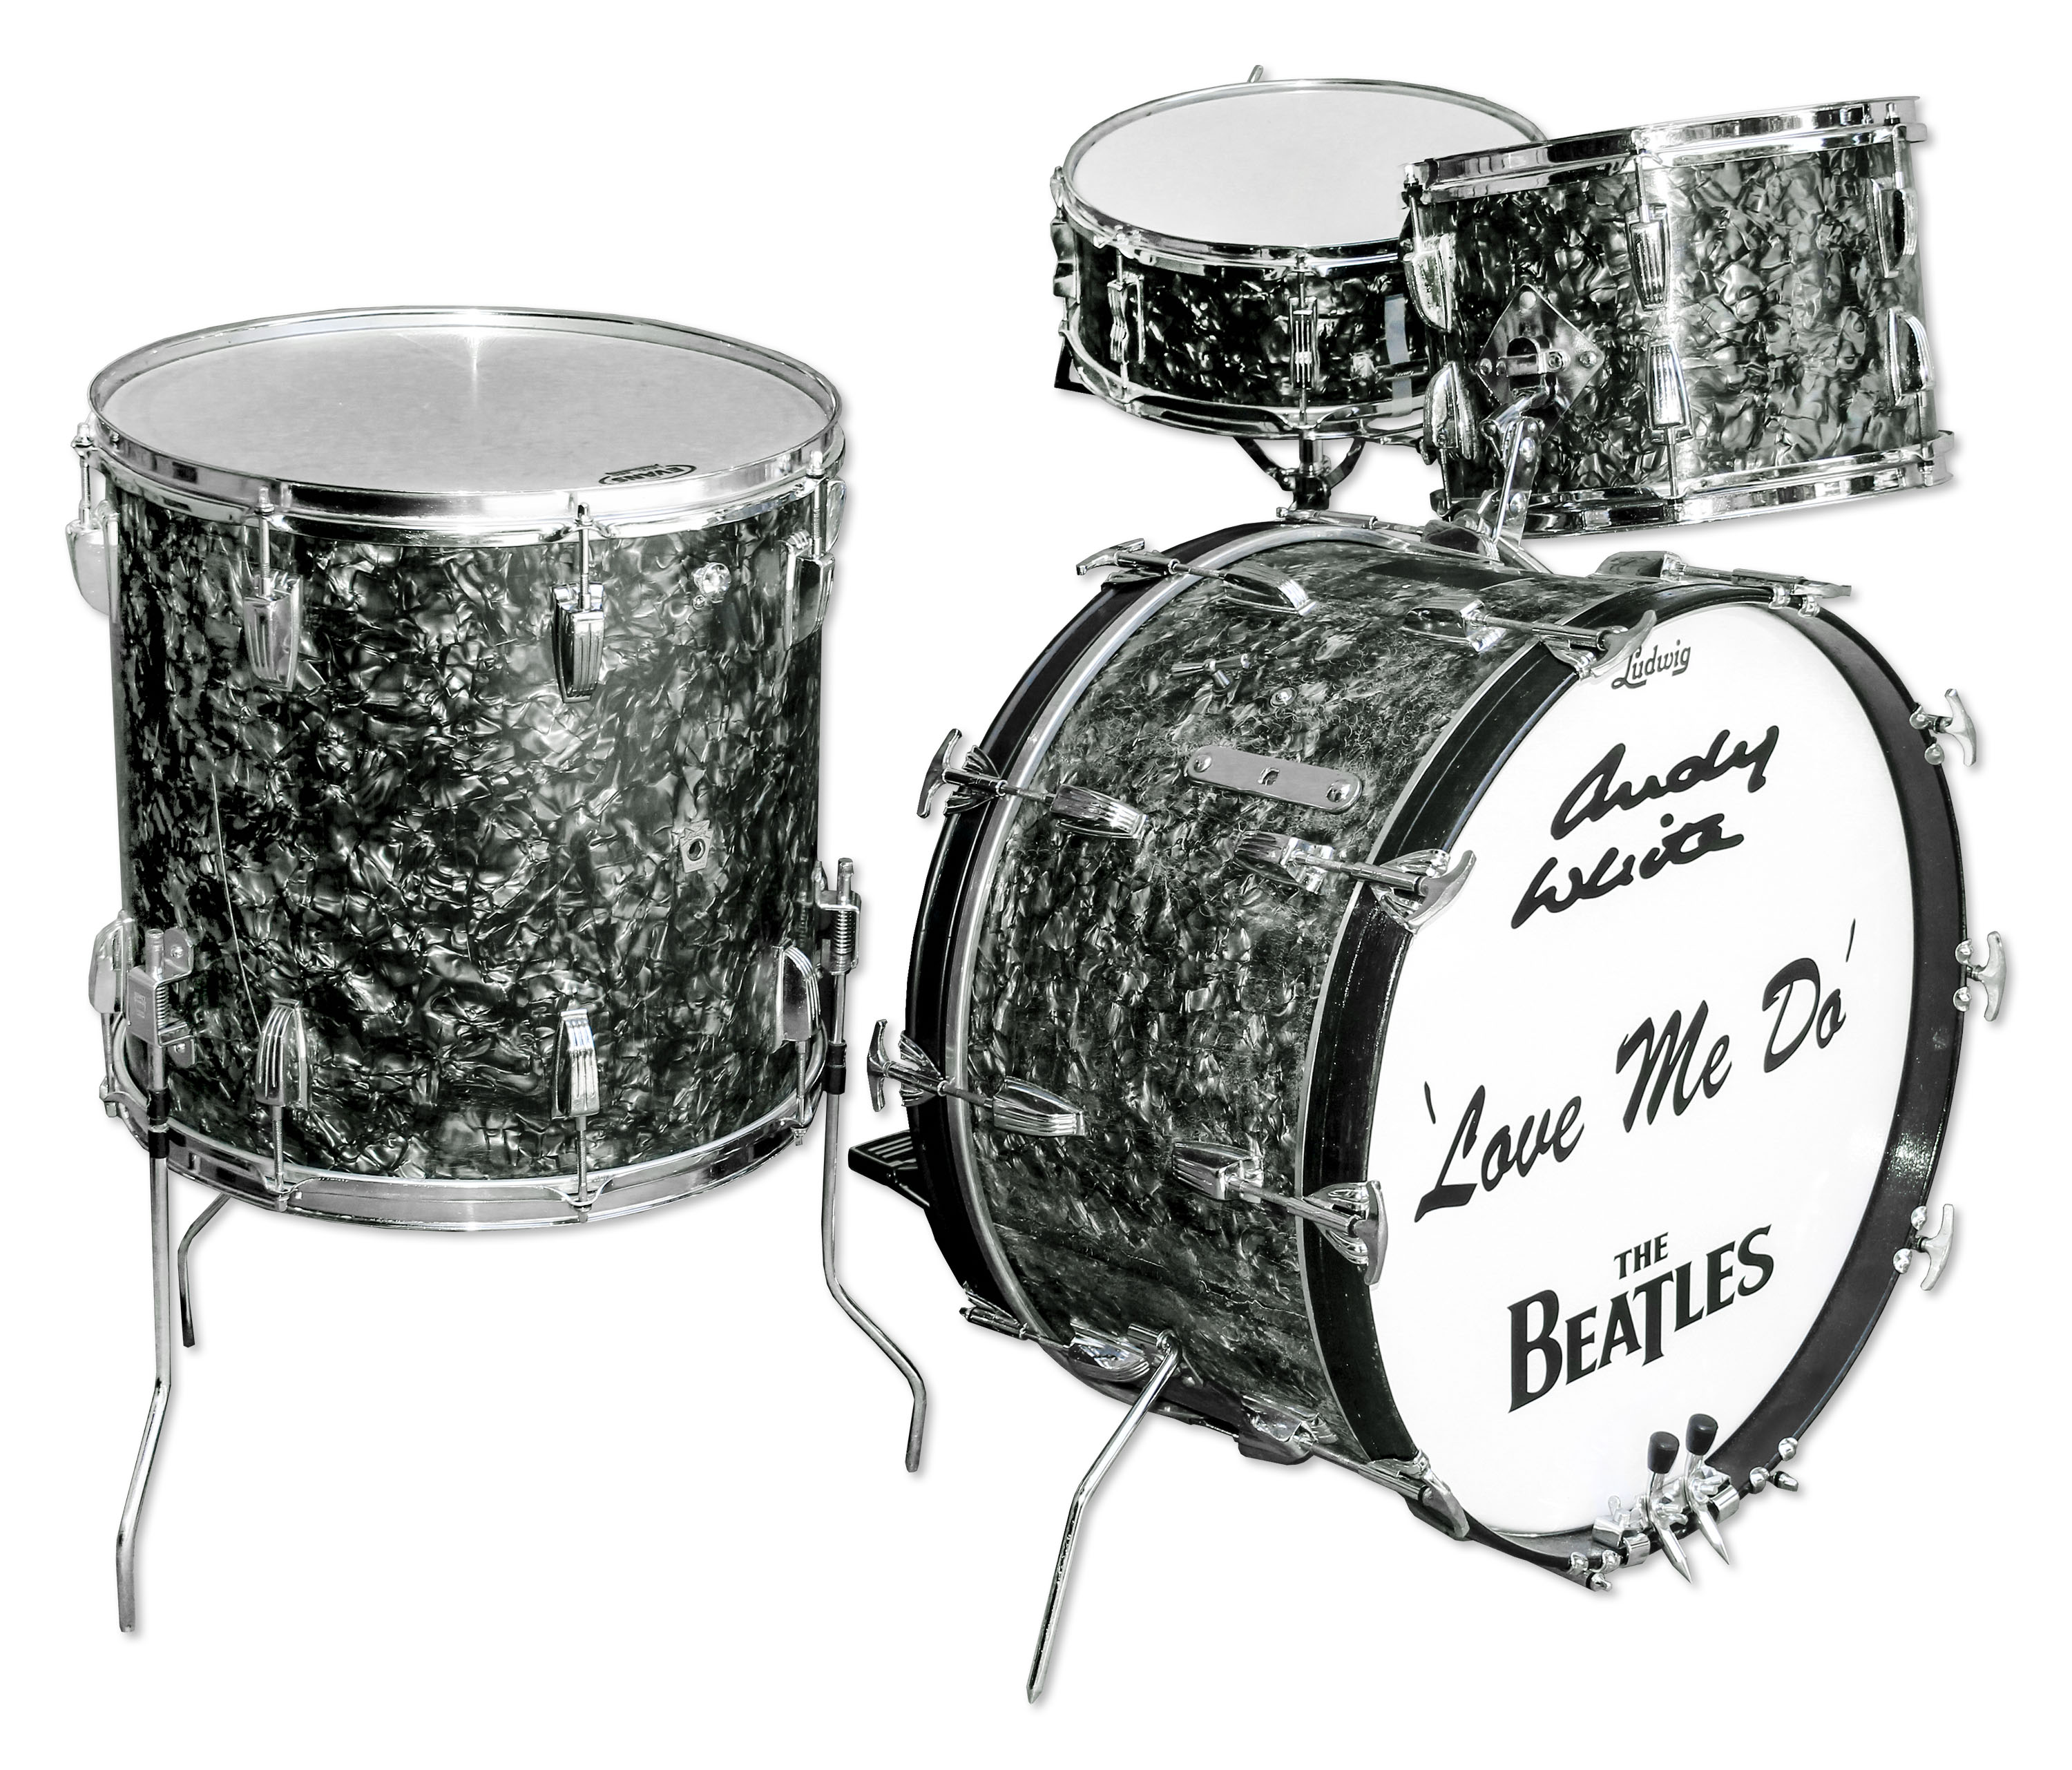 Become the owner of the legendary The Beatles drum kit